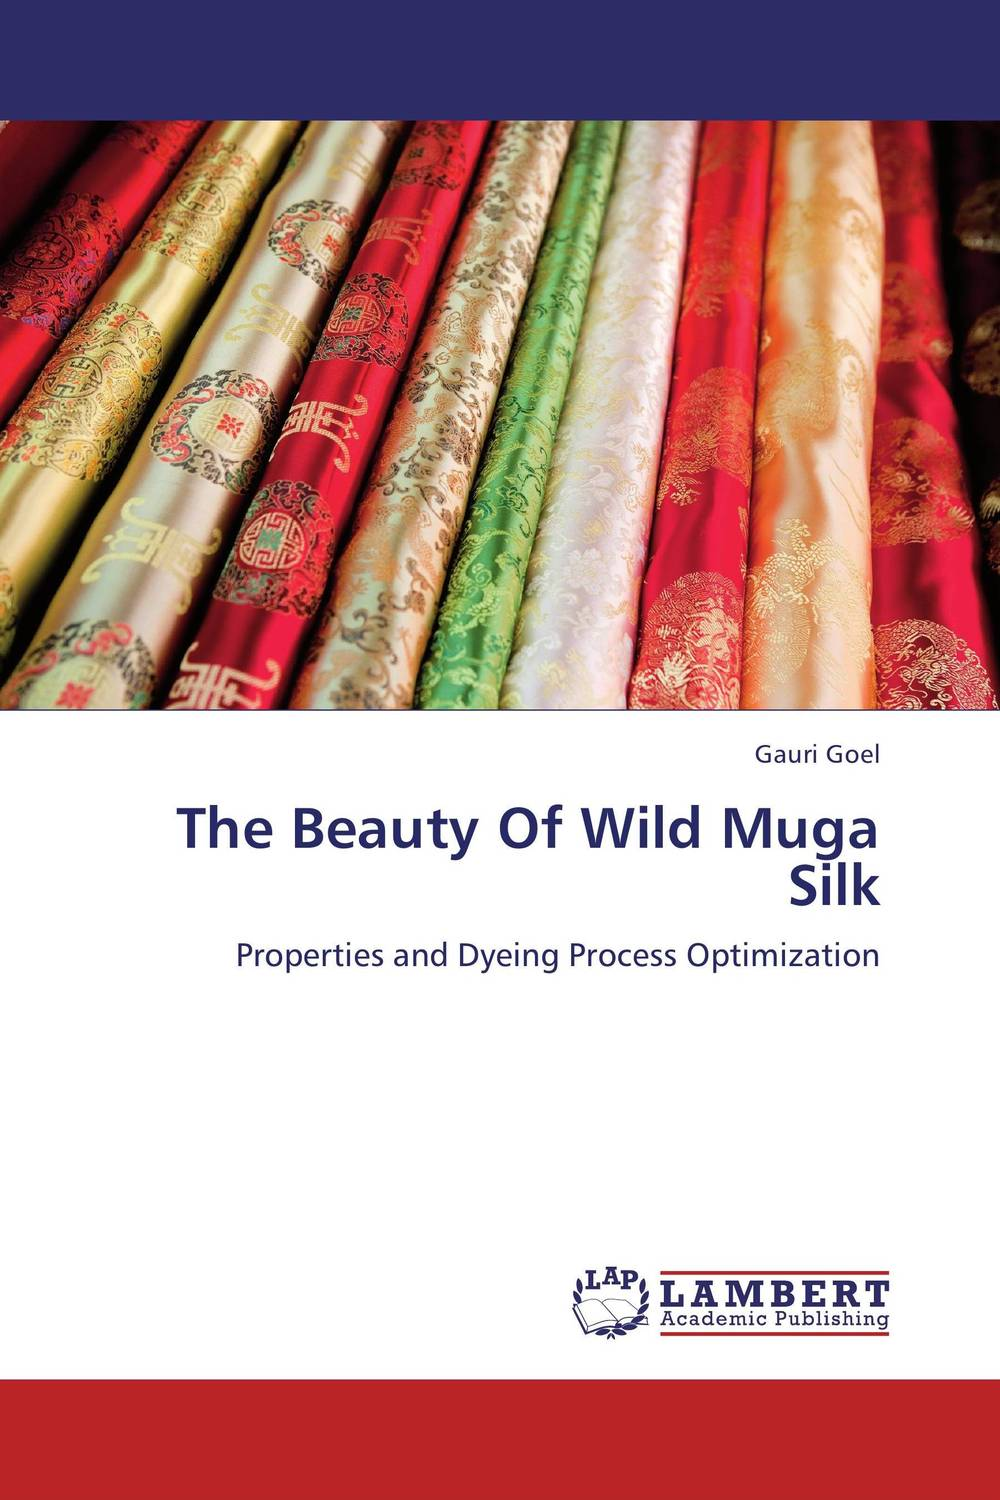 The Beauty Of Wild Muga Silk eco friendly dyeing of silk with natural dye